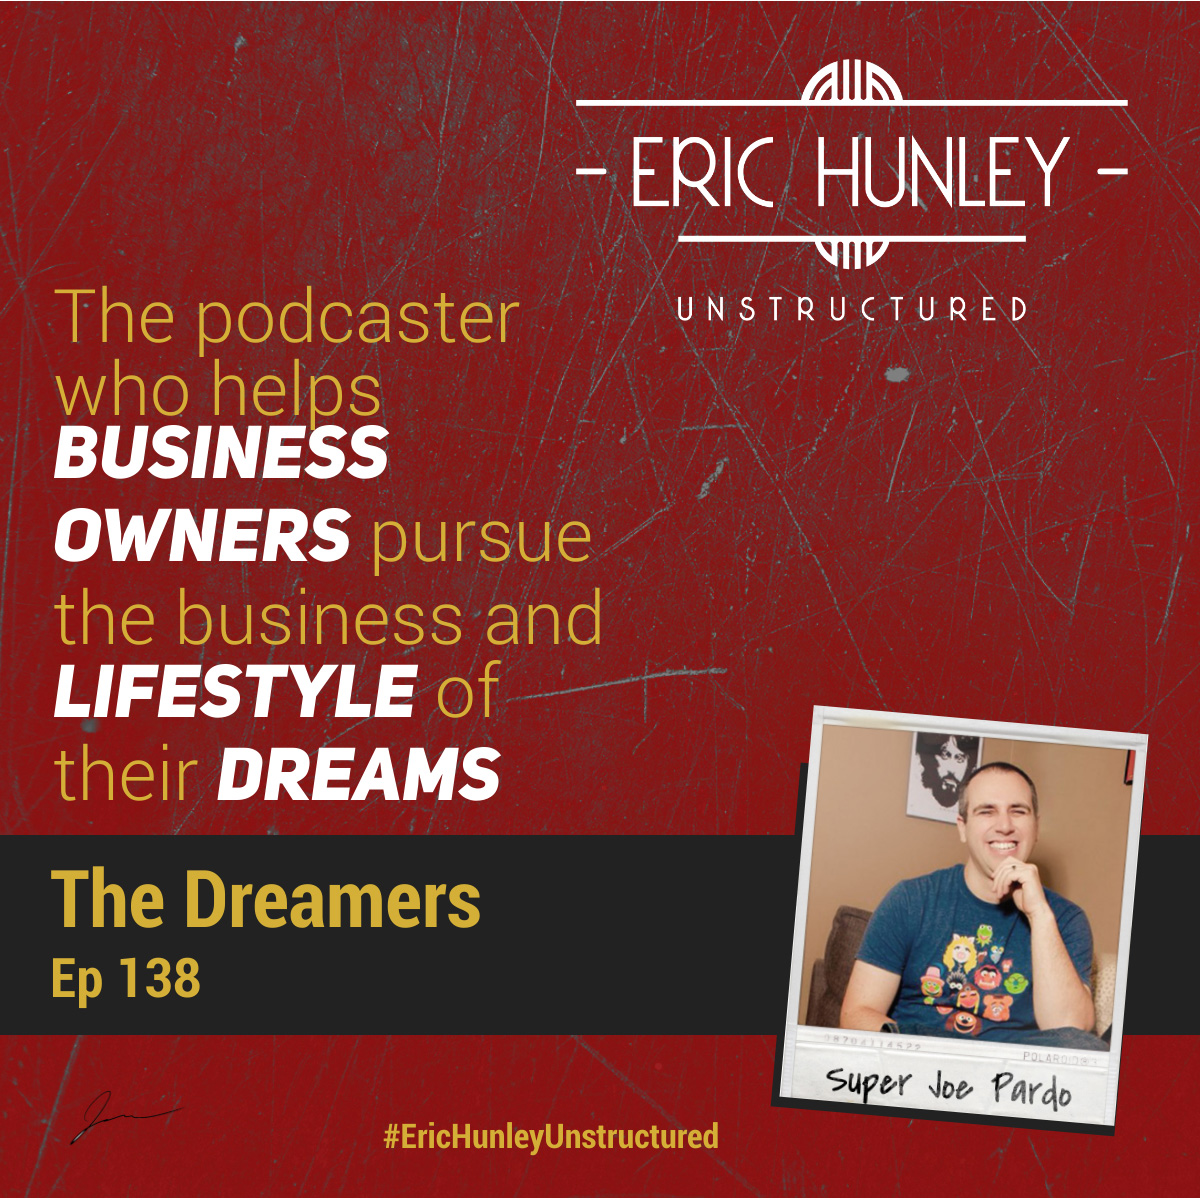 Eric Hunley Unstructured Podcast - 138 Super Joe Pardo Square Post